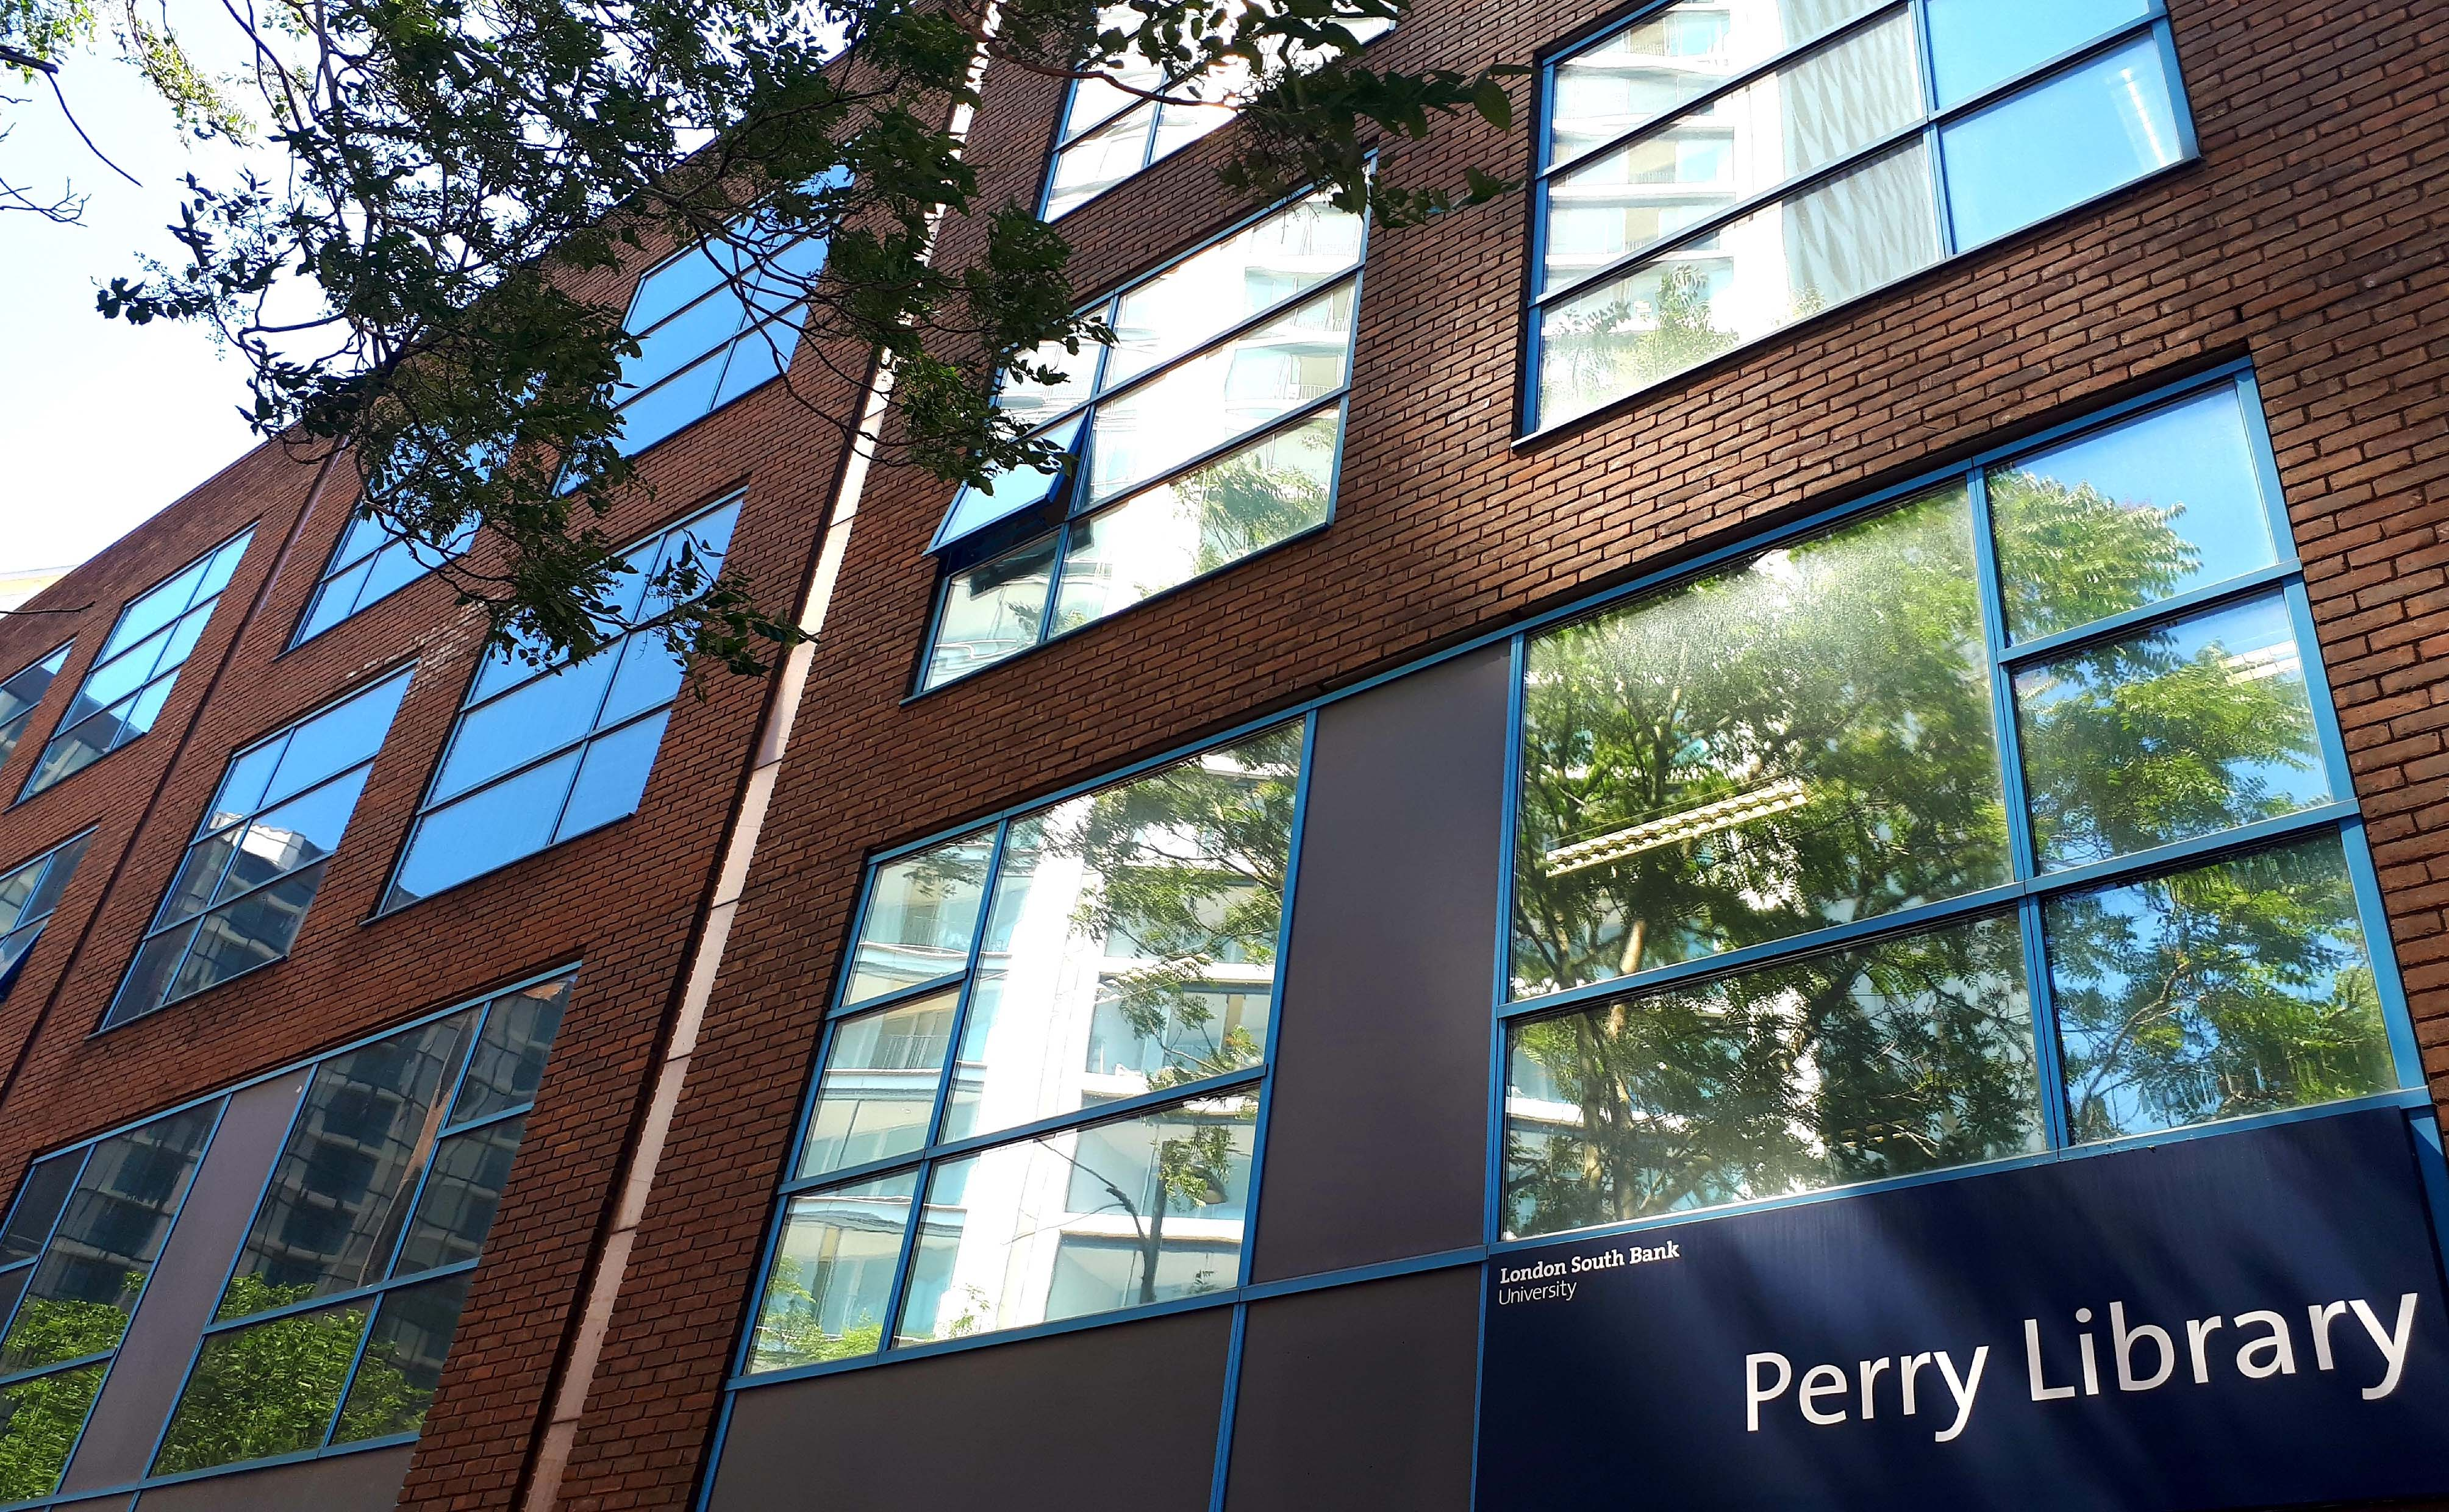 Perry Library building front entrance